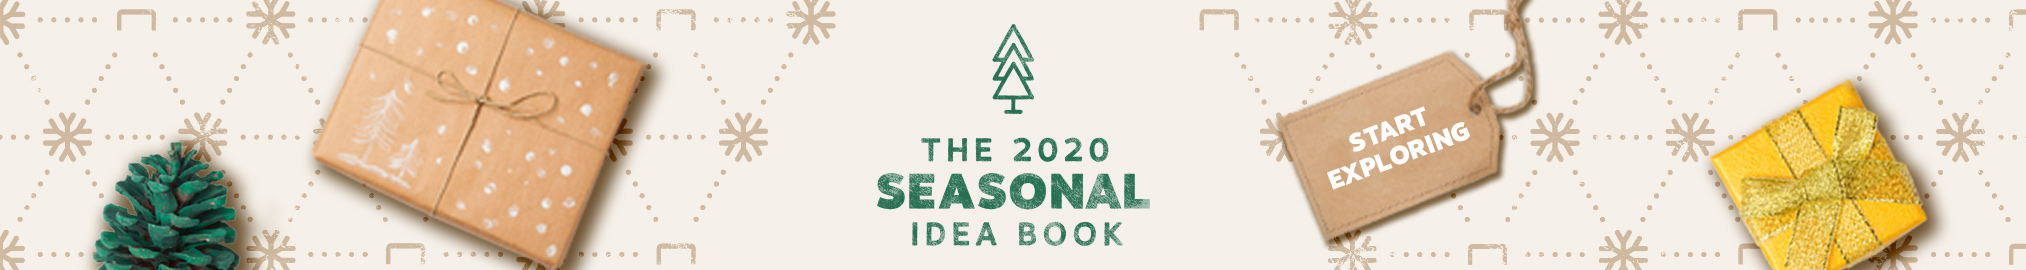 Seasonal Idea Book